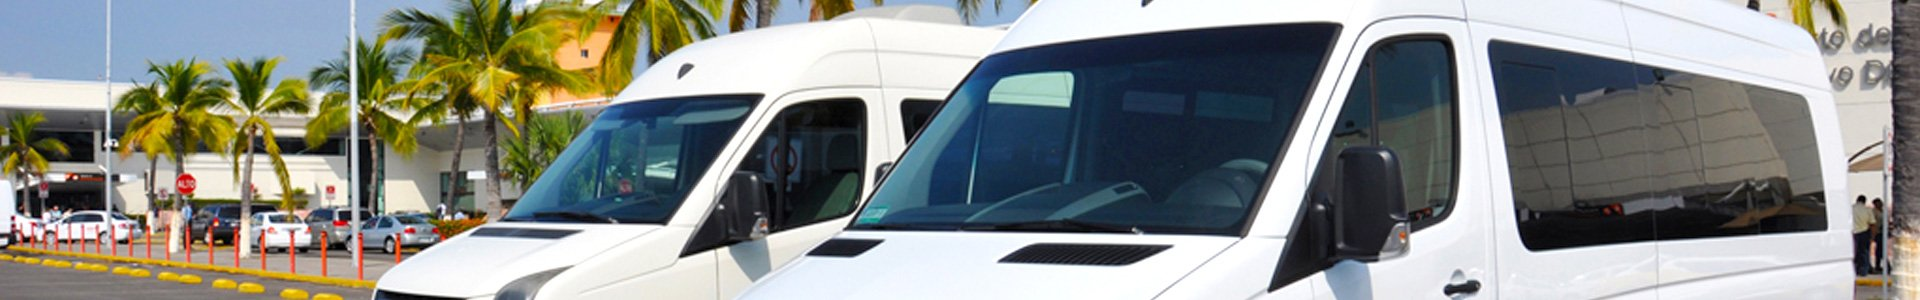 PVR Airport taxi transport shuttle